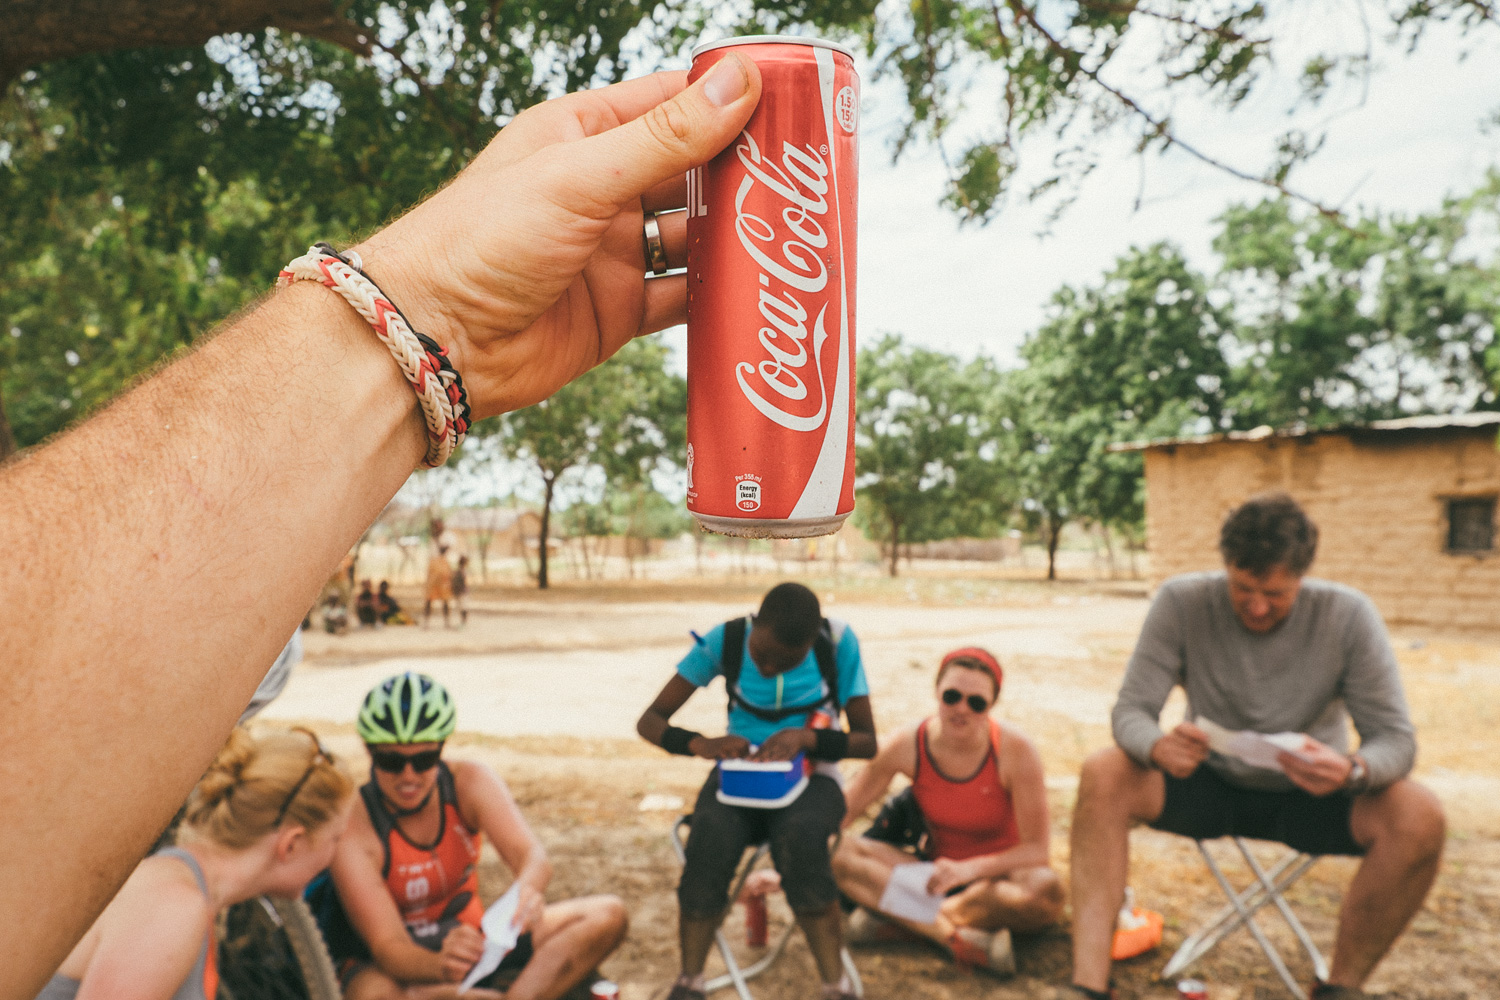 ^ I don't normally drink soda, but when I do it's the heavenly nectar of pure sugar coca-cola on a lunch break in the middle of a toasty ride.